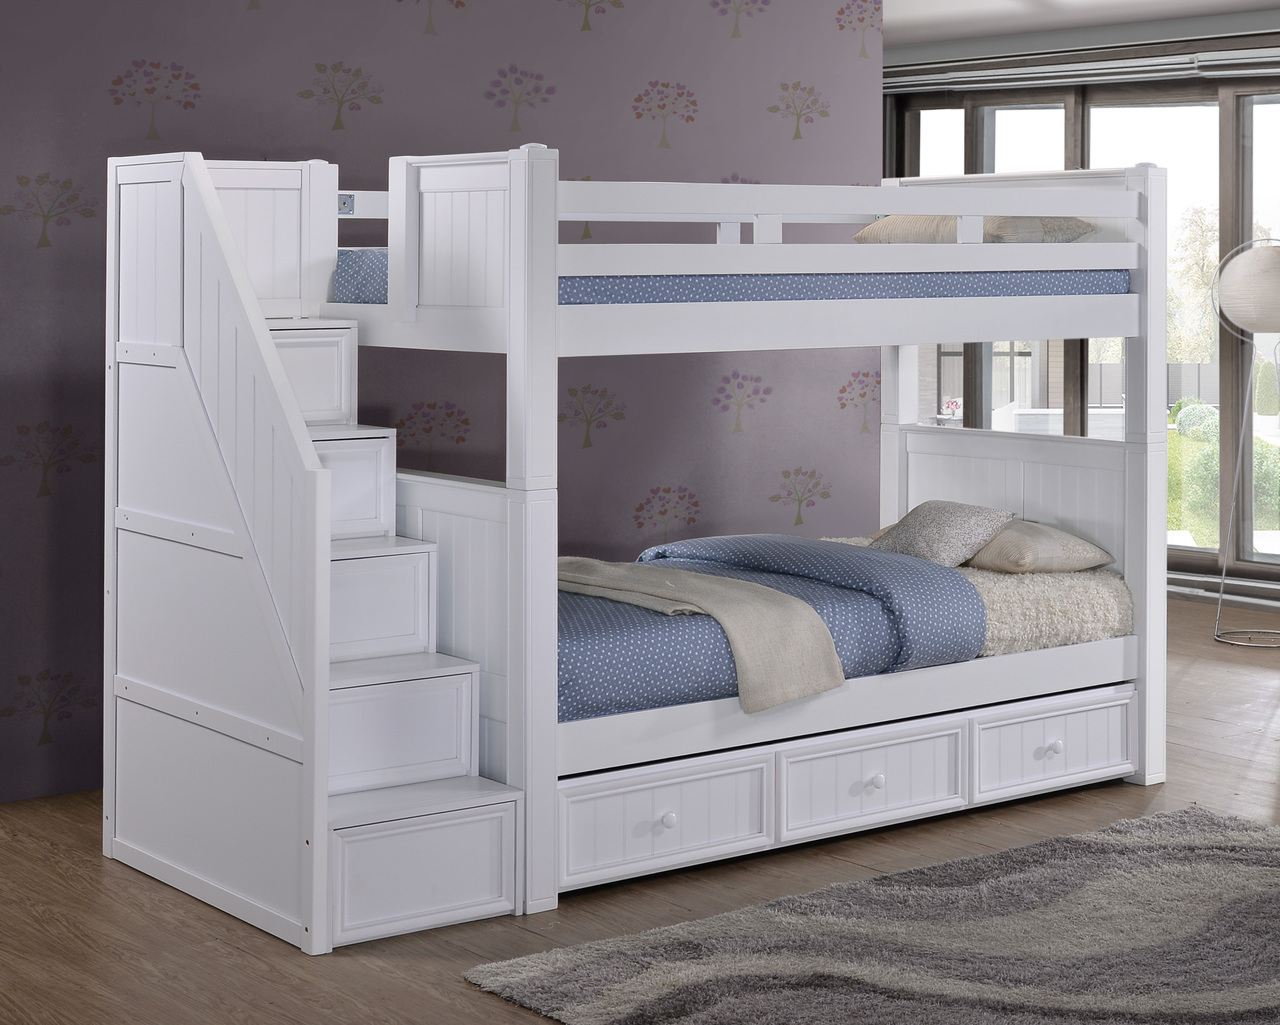 Image of: Twin over Twin Bunk Beds with Storage Ideas